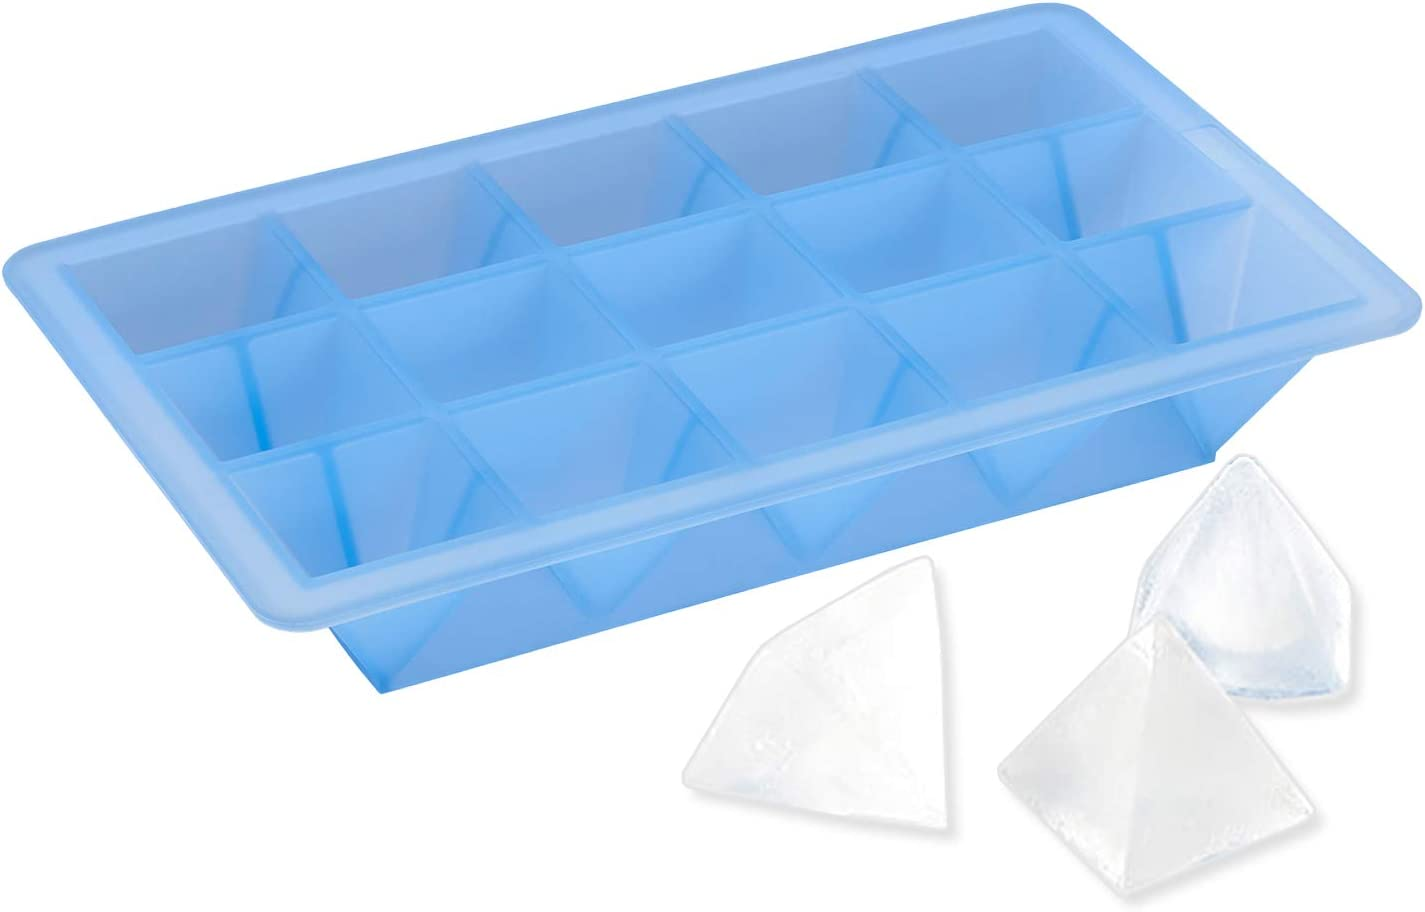 Lurch Germany 0.7 x 0.7 Inch Silicone Ice Cube Tray Blue